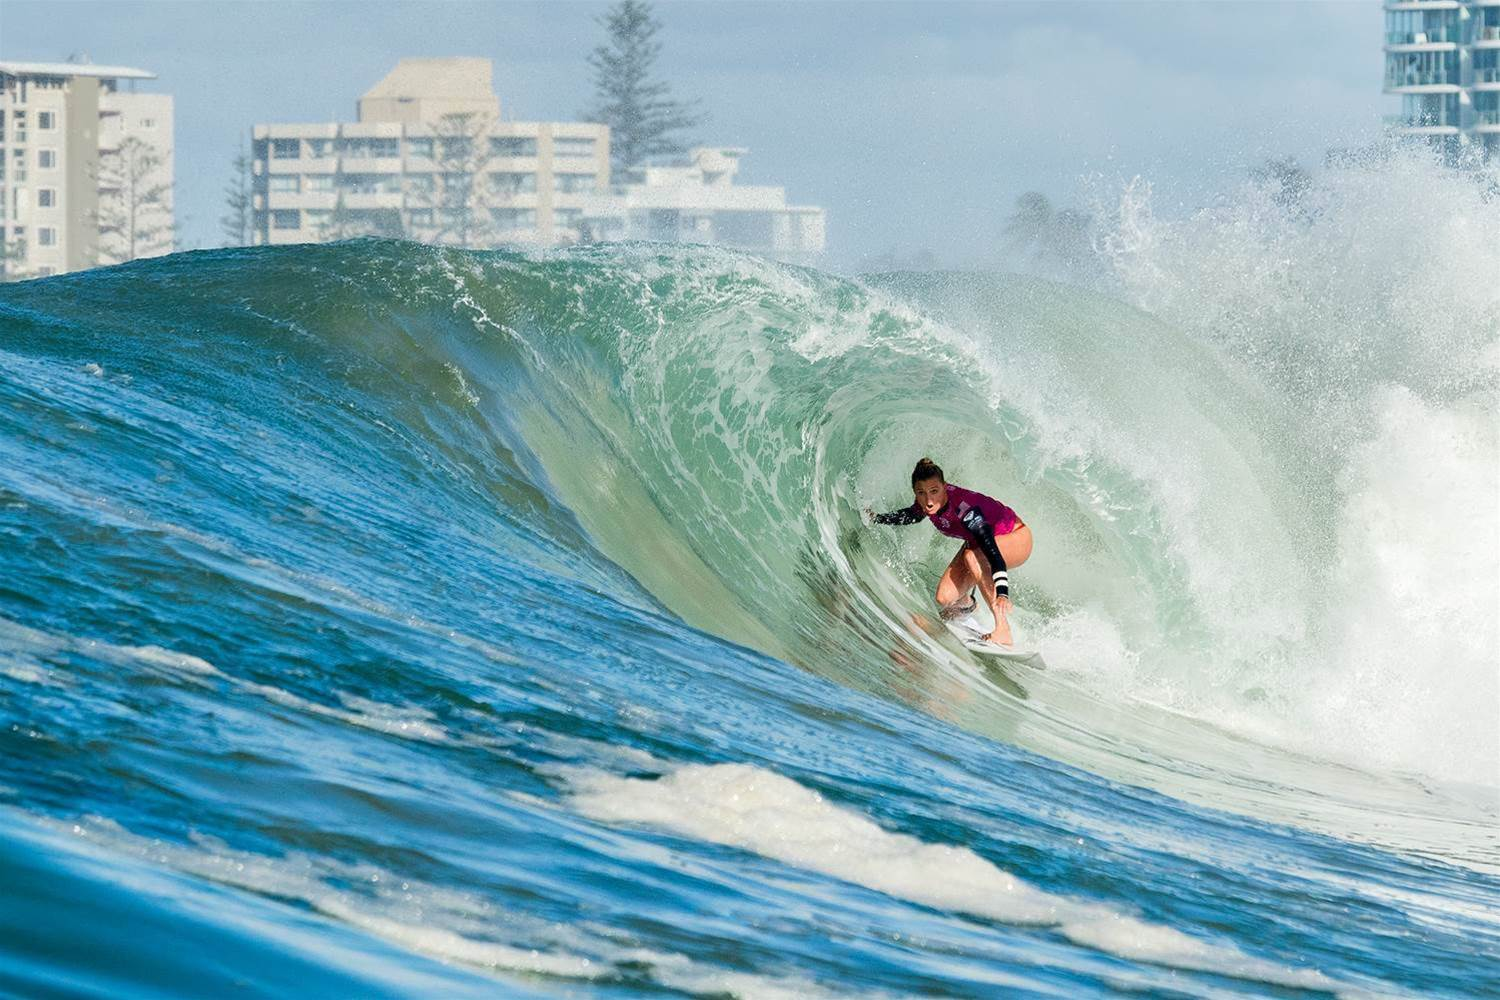 Early Warning Signs on the Women's WCT.